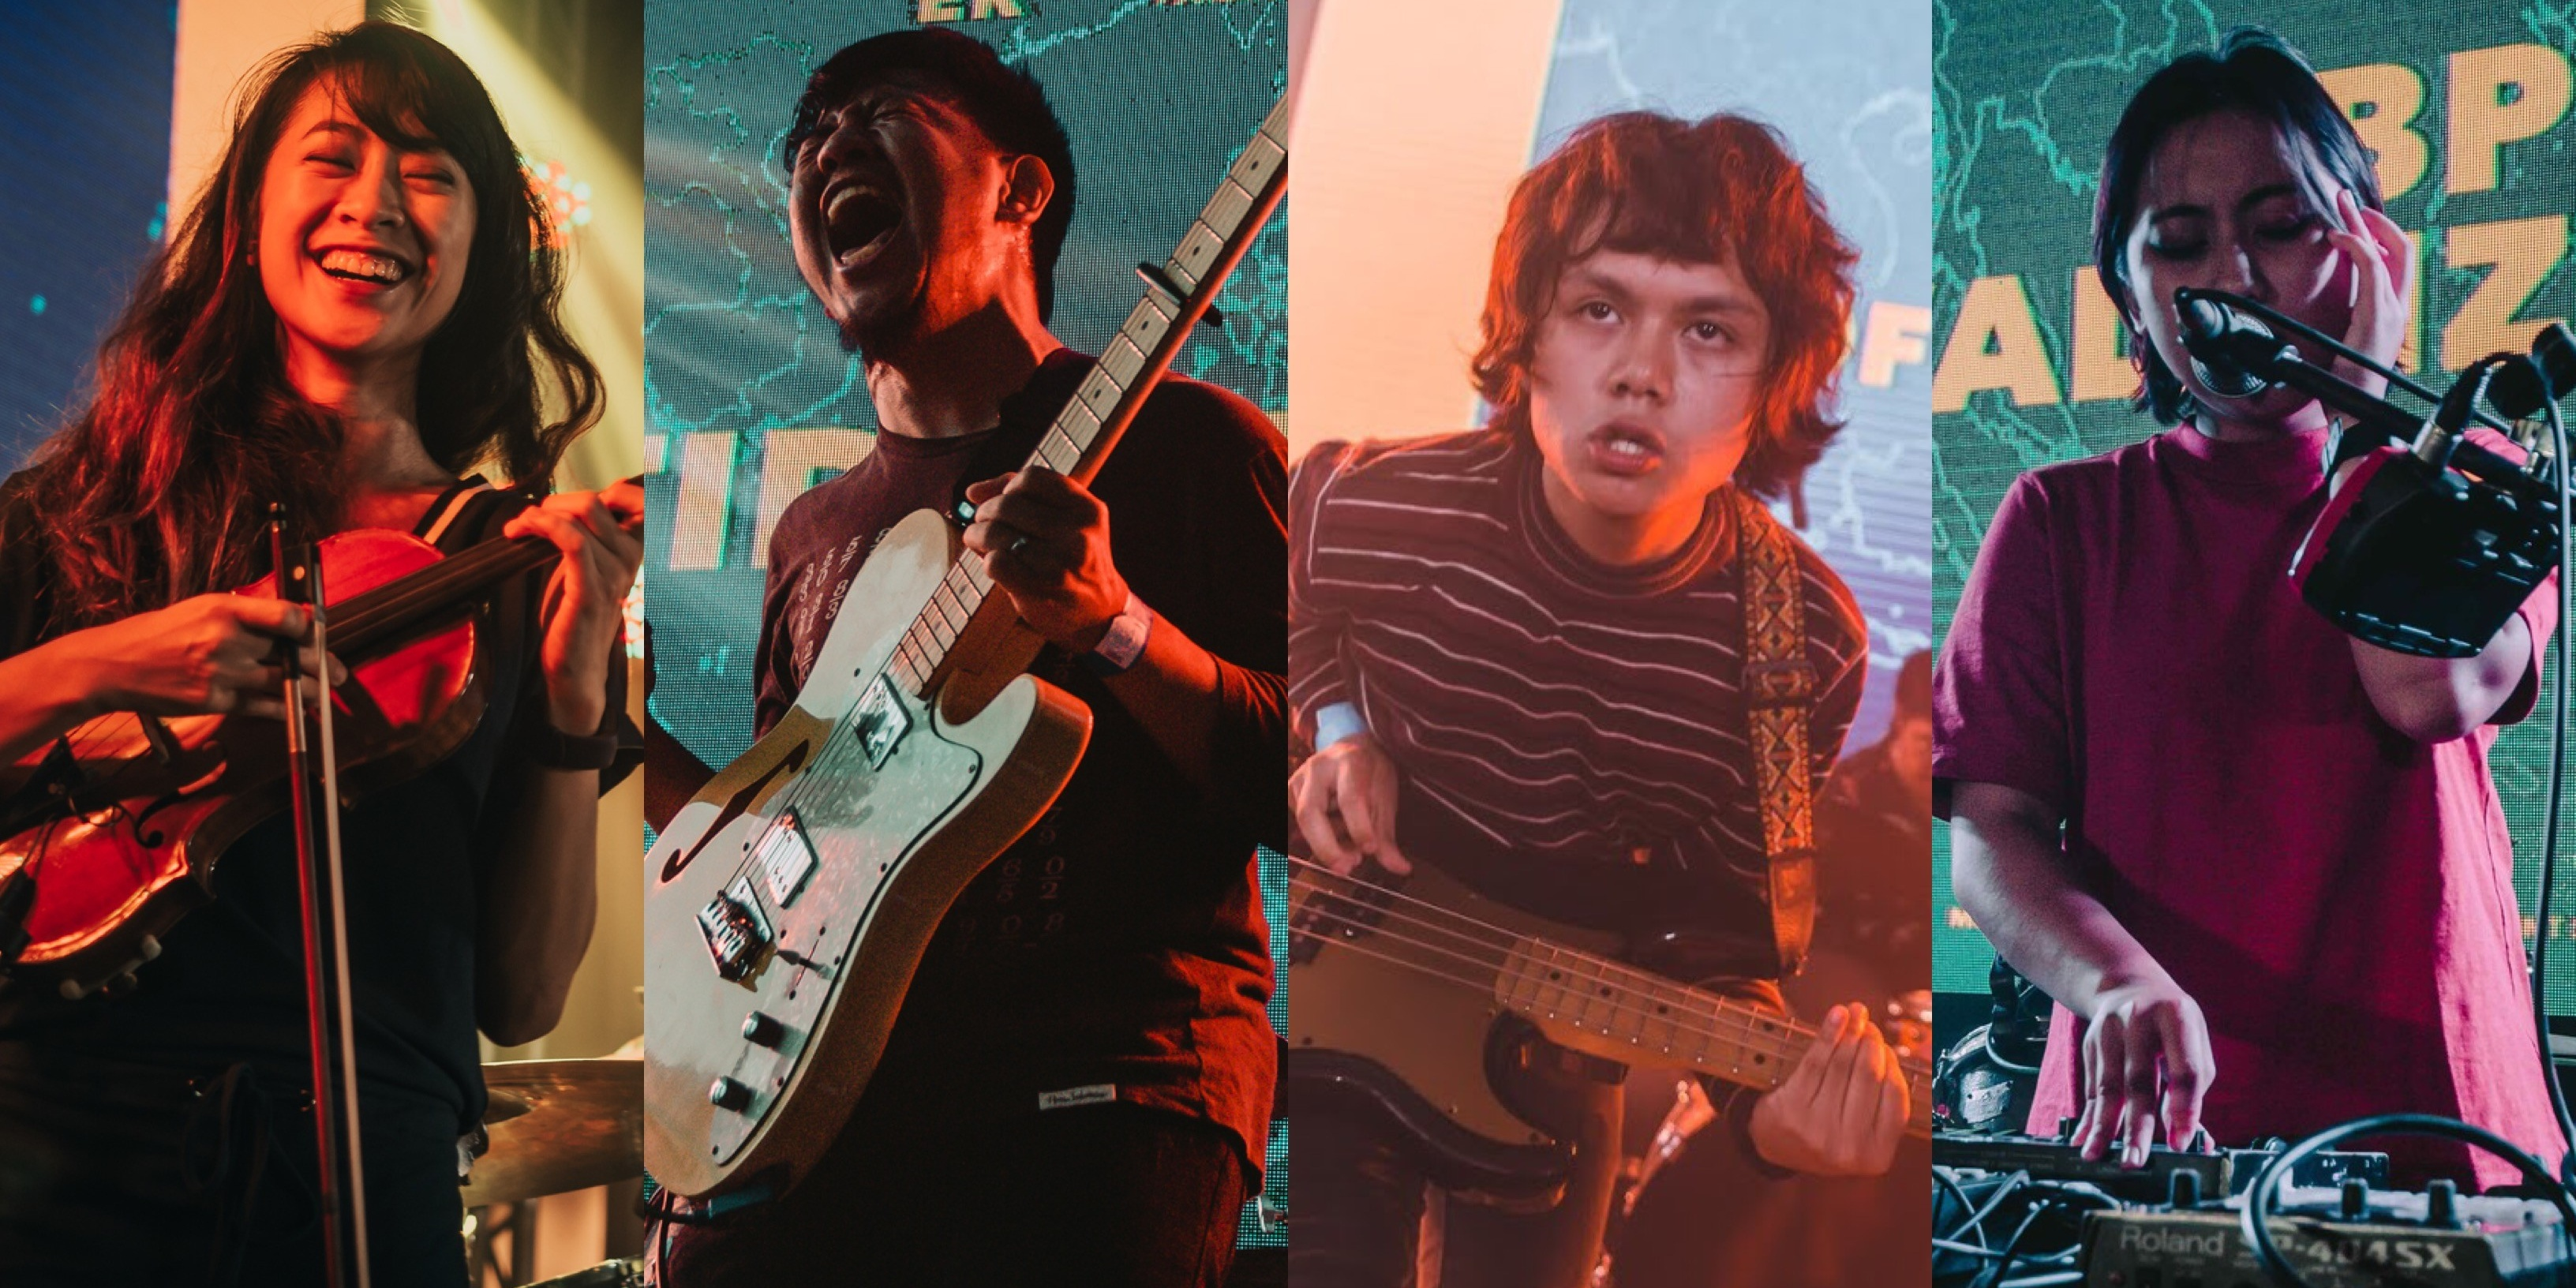 The Rest Is Noise bring genres and regional acts together for Summer Noise 2018 – photo gallery